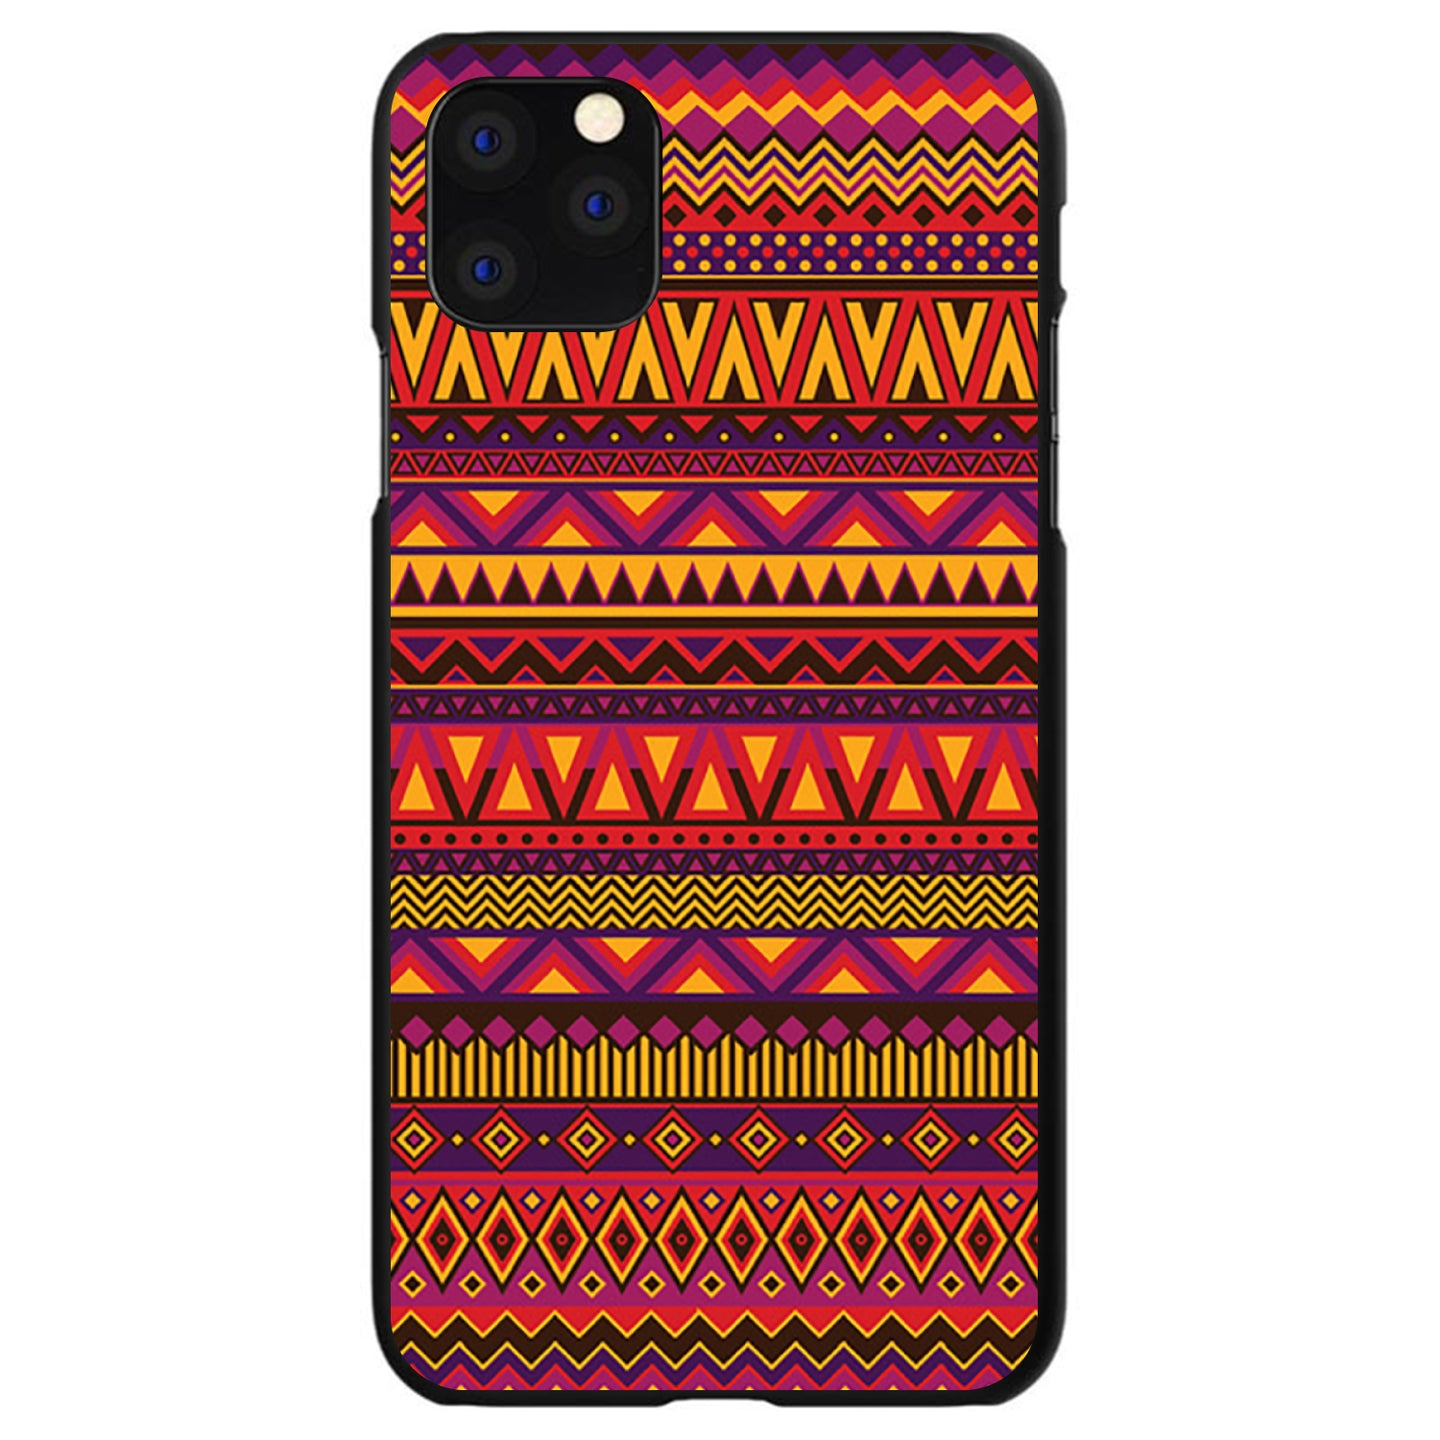 DistinctInk® Hard Plastic Snap-On Case for Apple iPhone - Purple Red Yellow Tribal Print